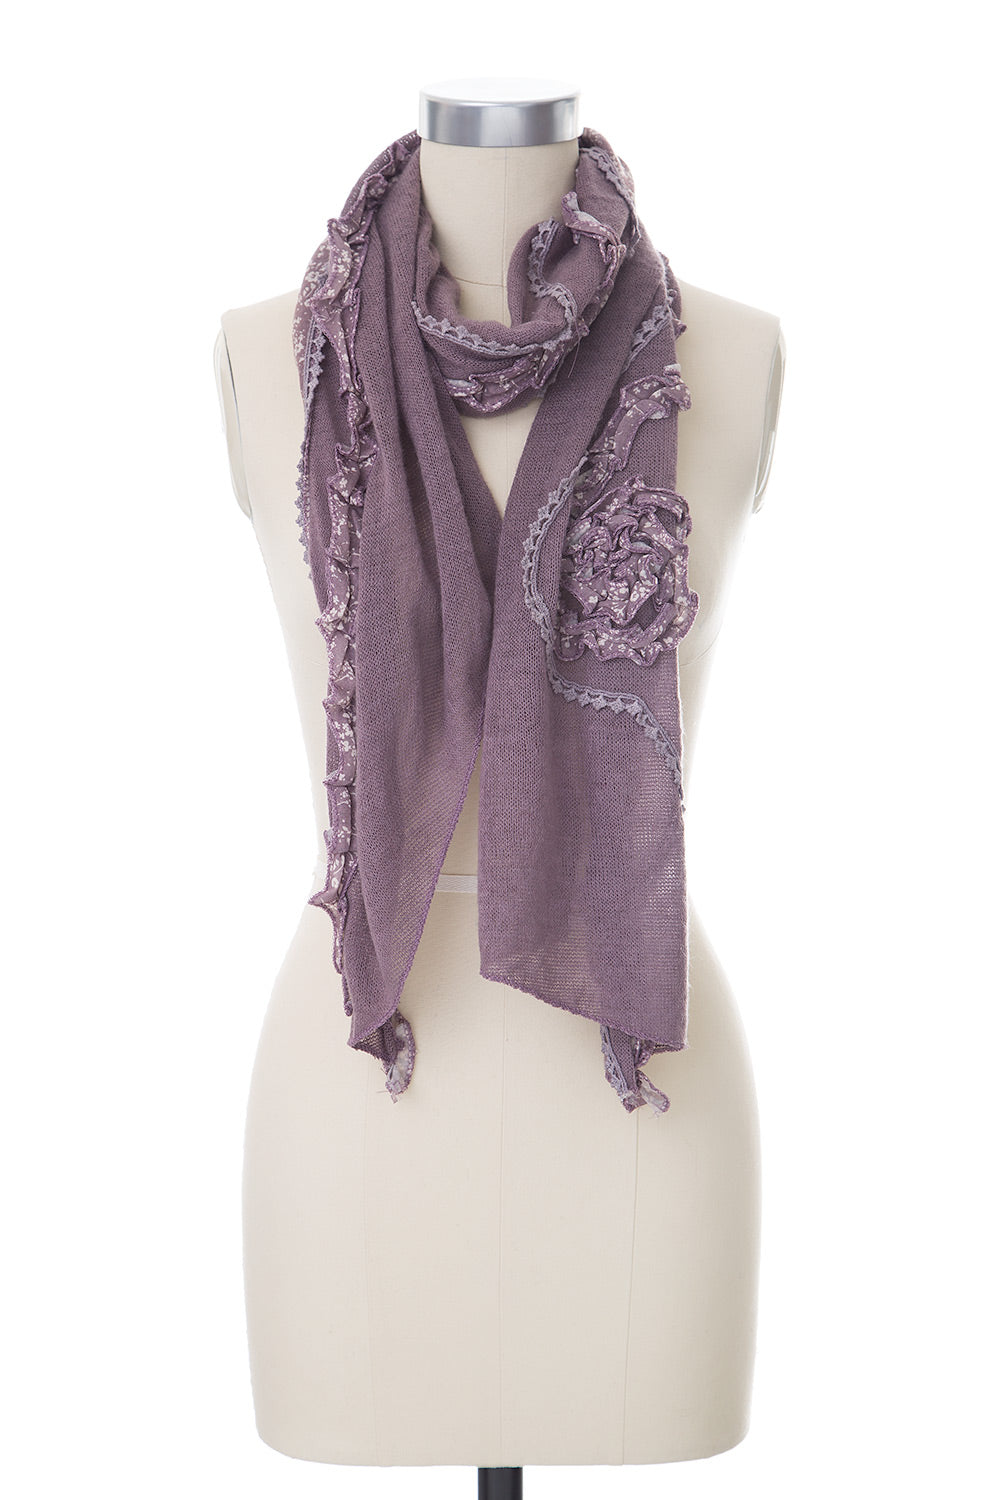 Type 2 Ruffled Rose Scarf in Lavender